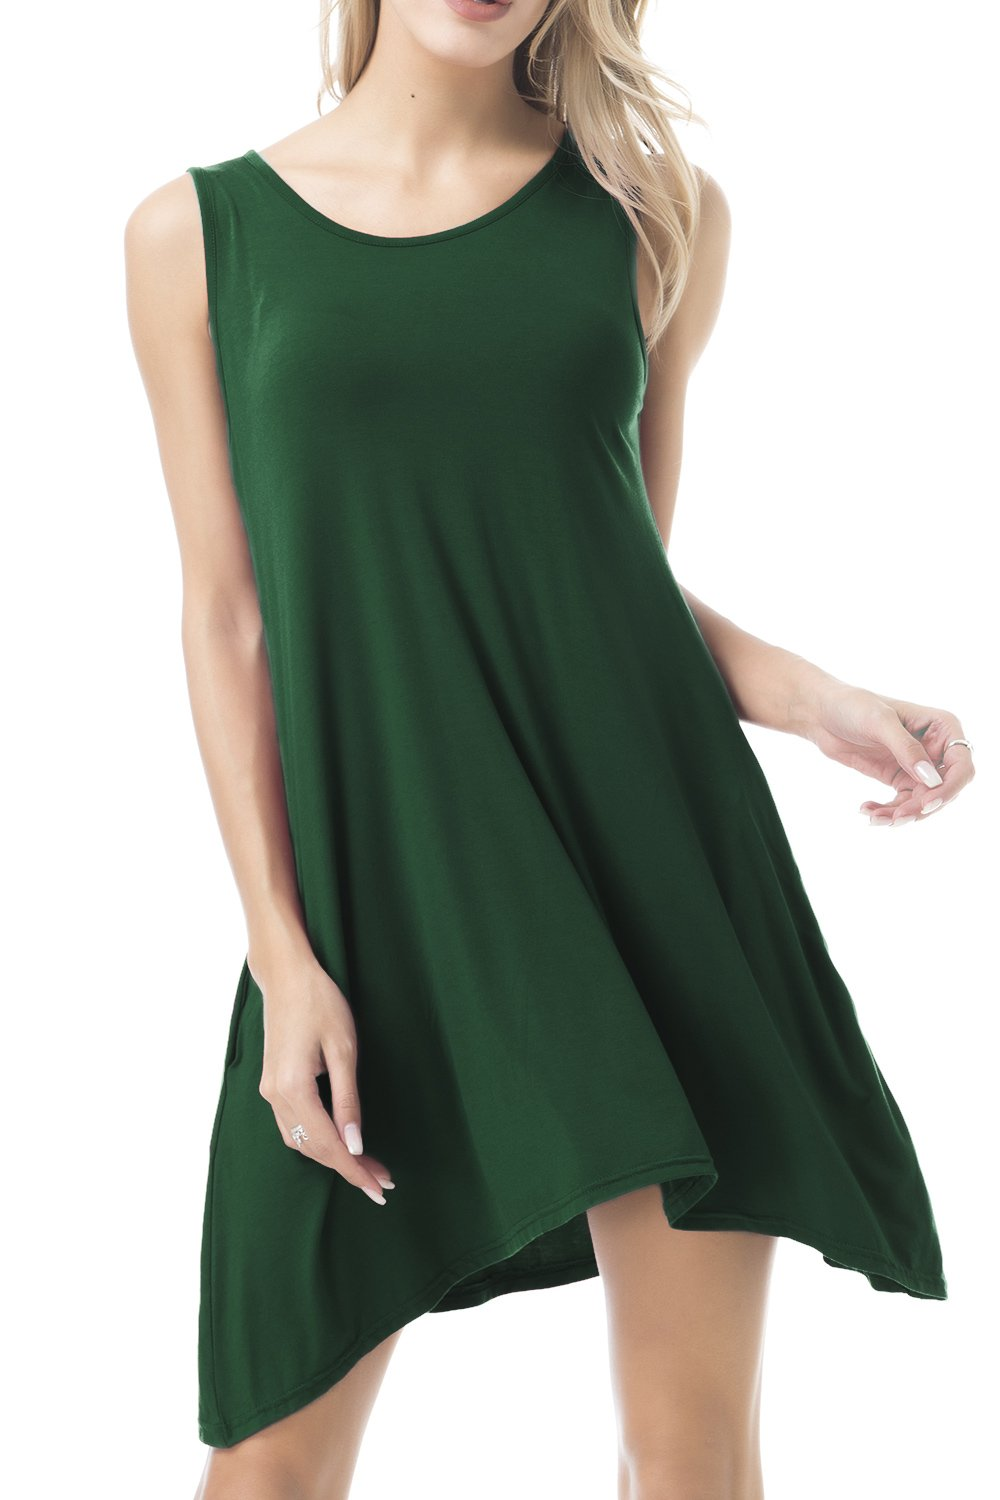 FISOUL Women Tops O-Neck Sleeveless Dress With Double Pockets Loose Bottoming Shirt Green M by FISOUL (Image #1)